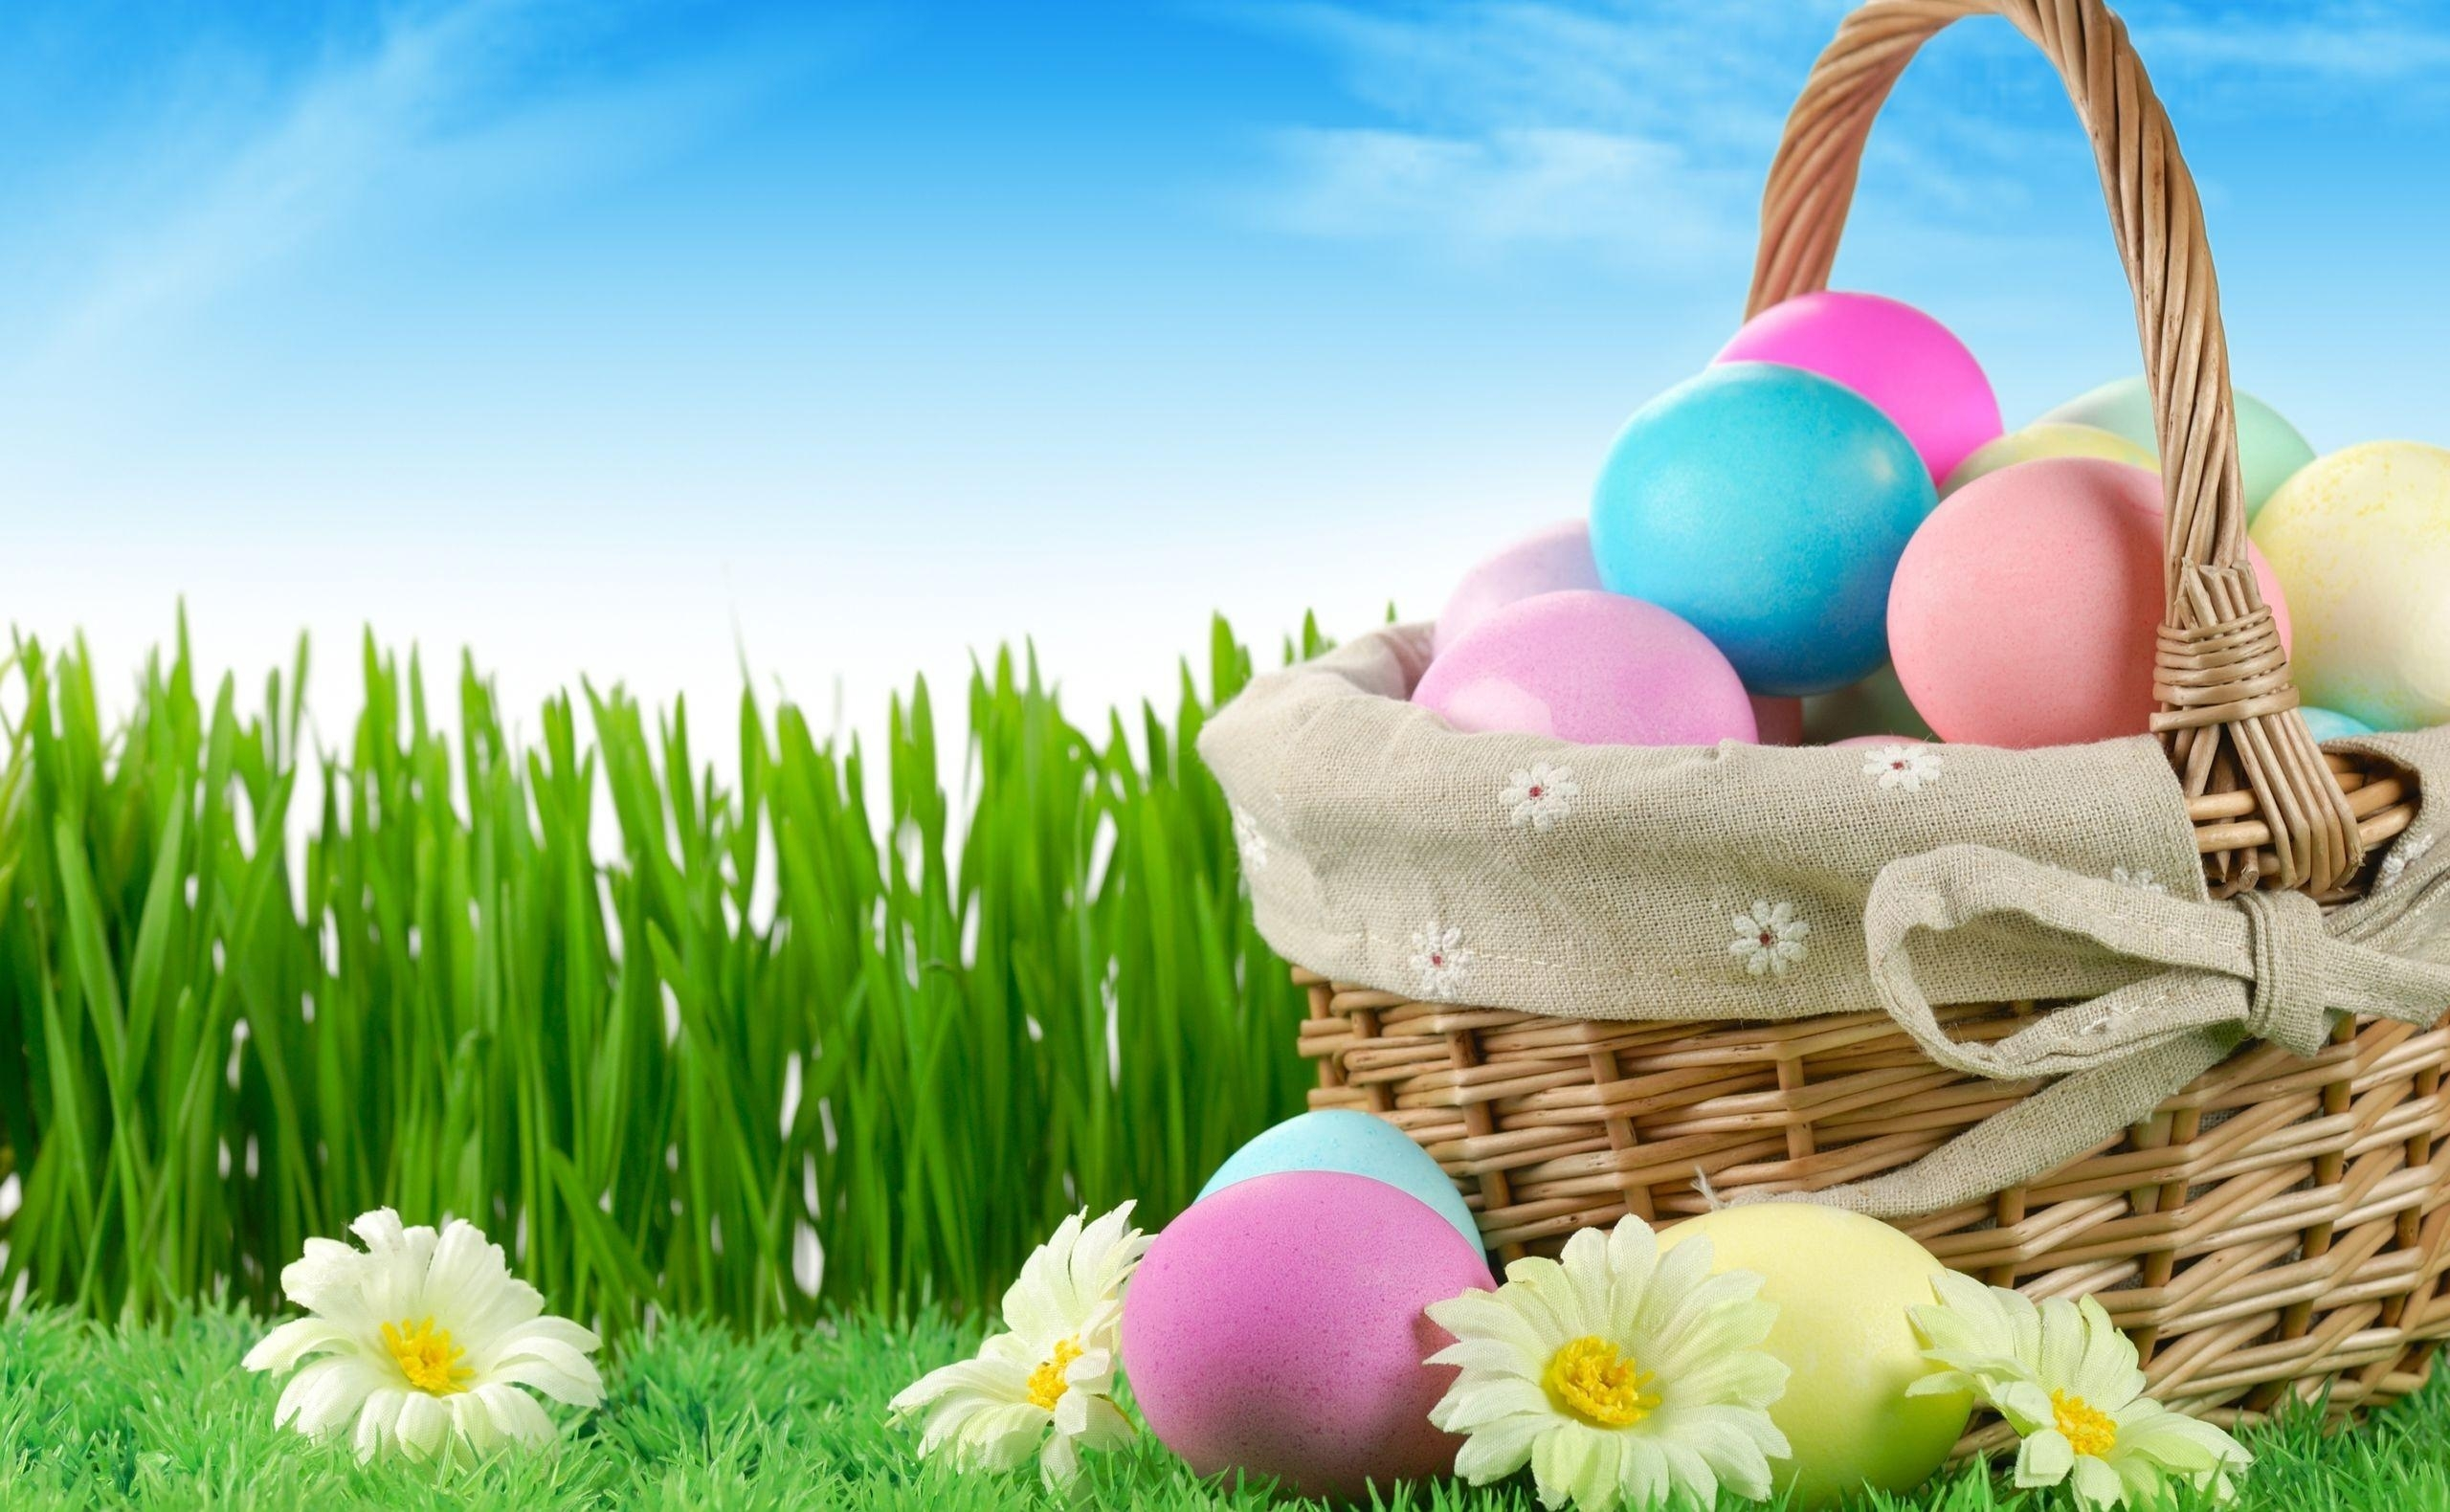 Easter Wallpapers HD download colletion 60 2560x1580